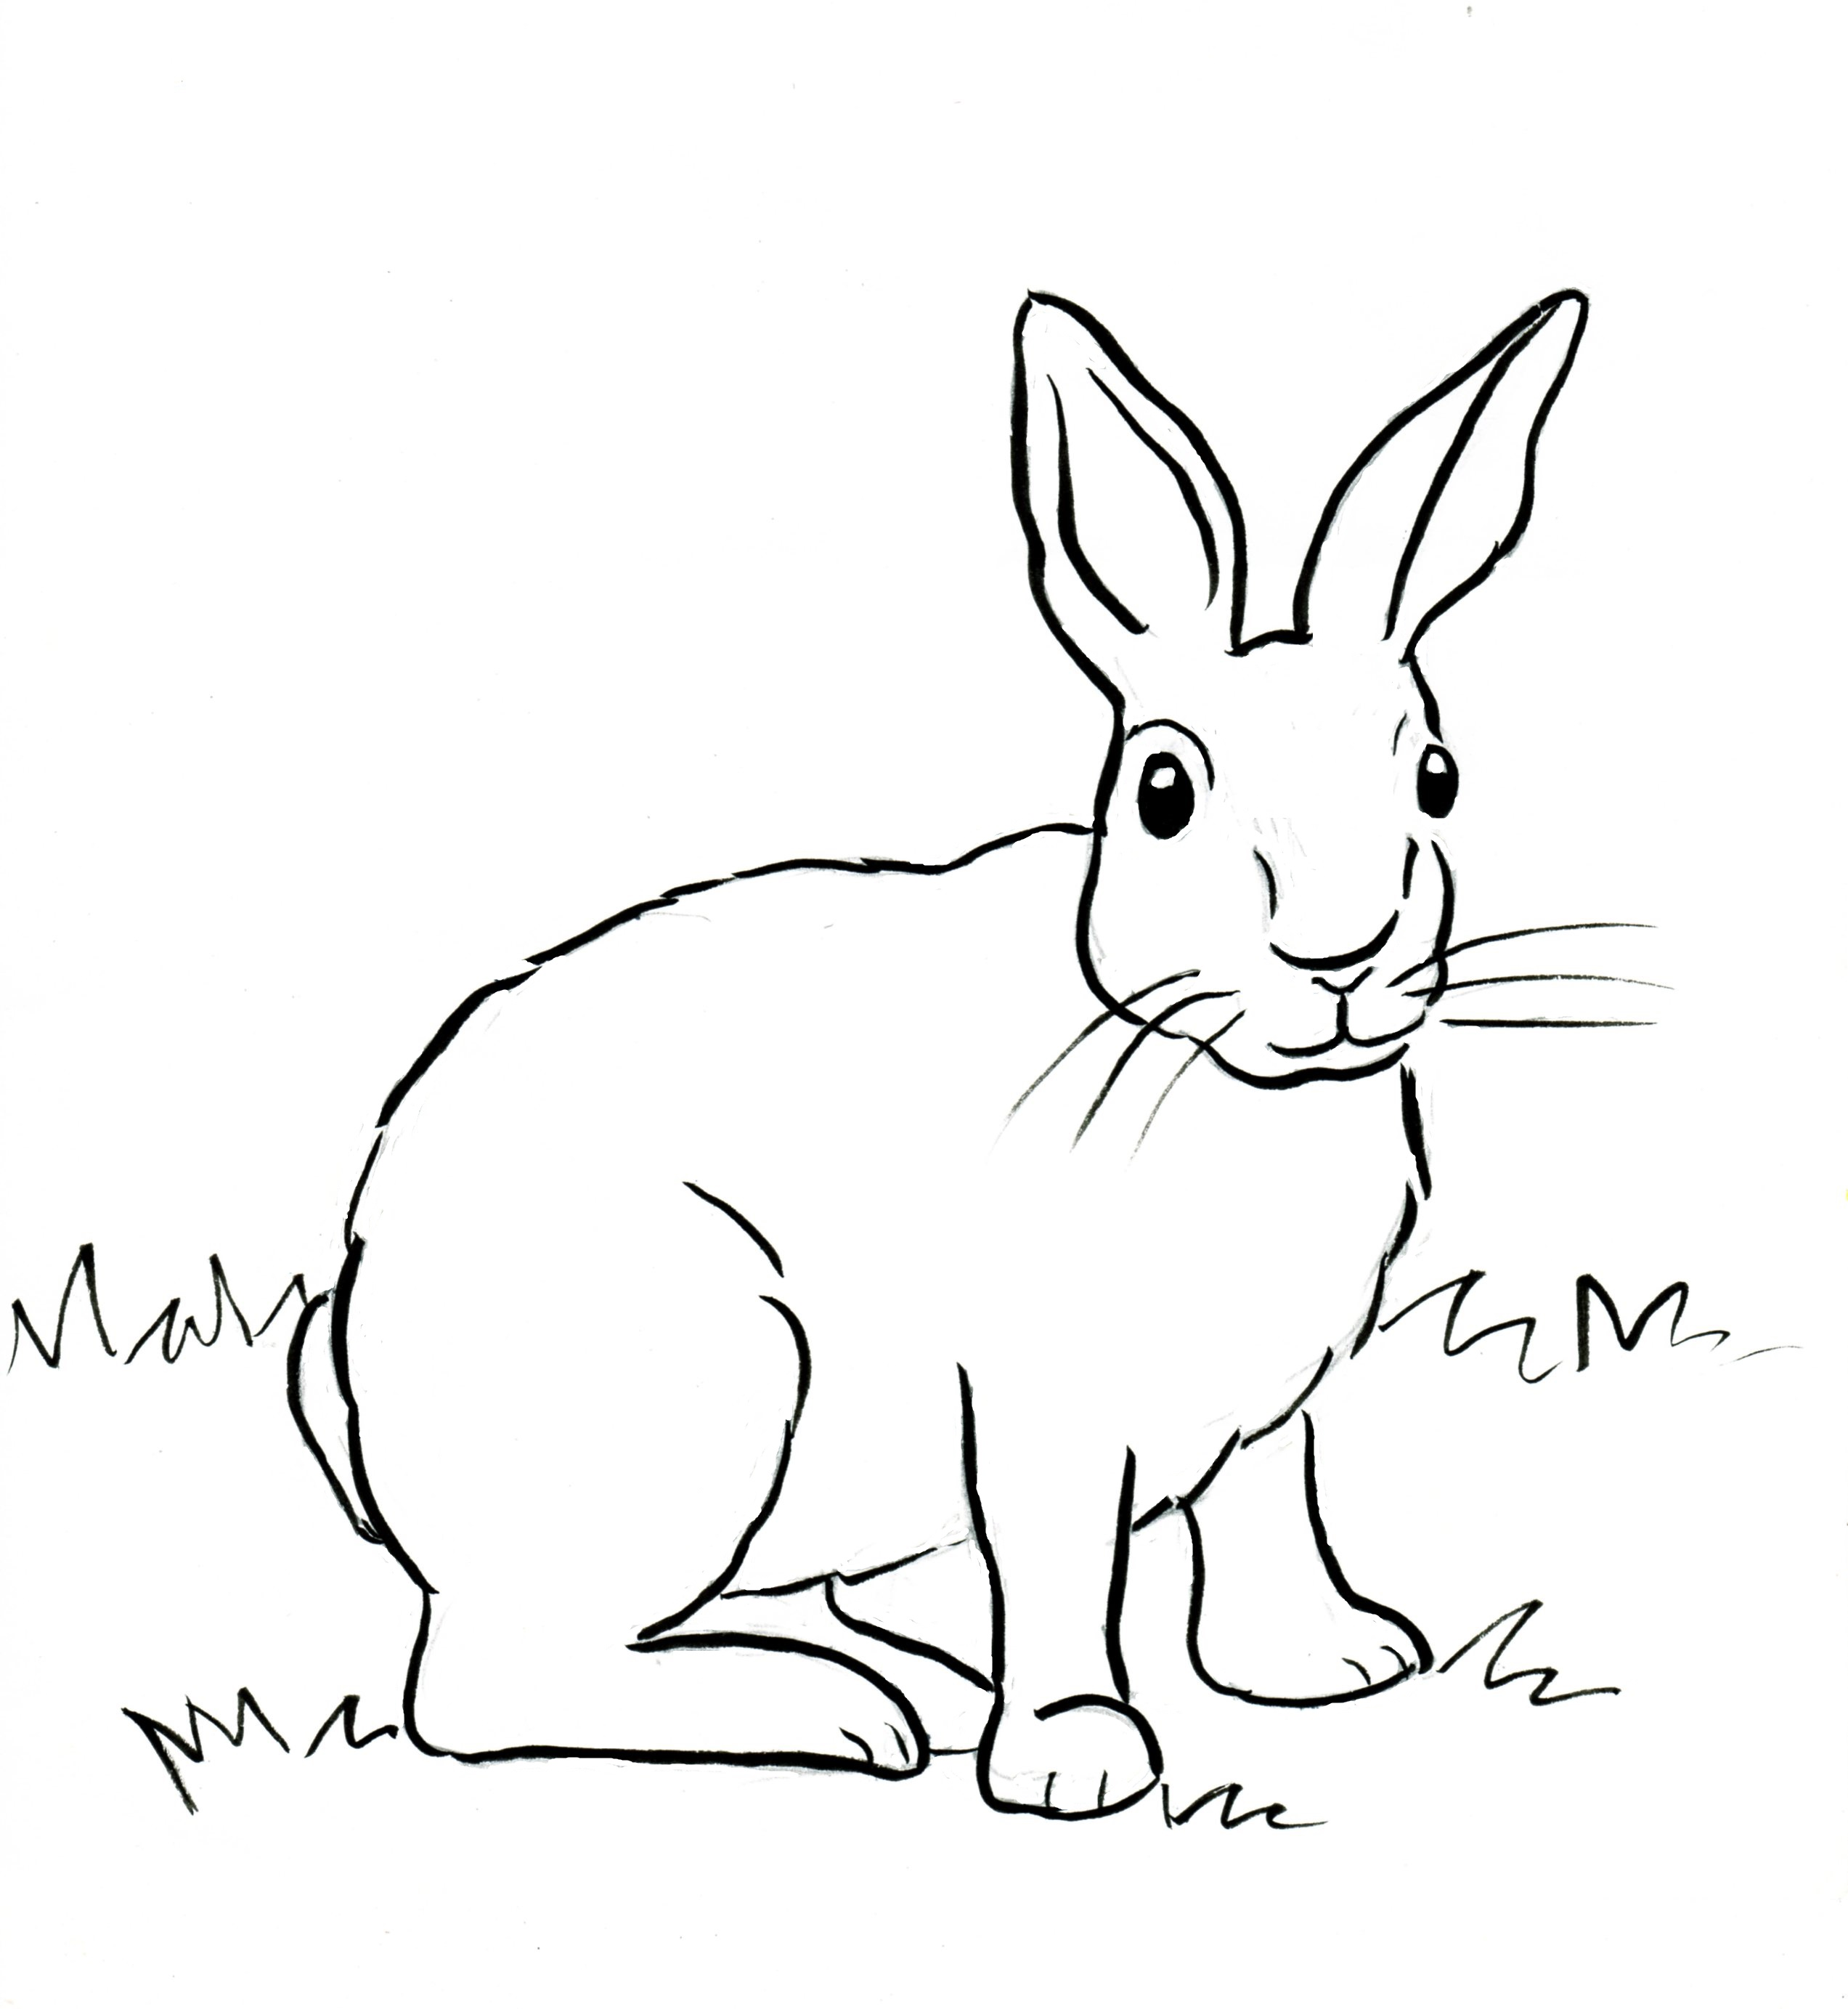 cottontail rabbit coloring page samantha bell - Rabbit Coloring Pages